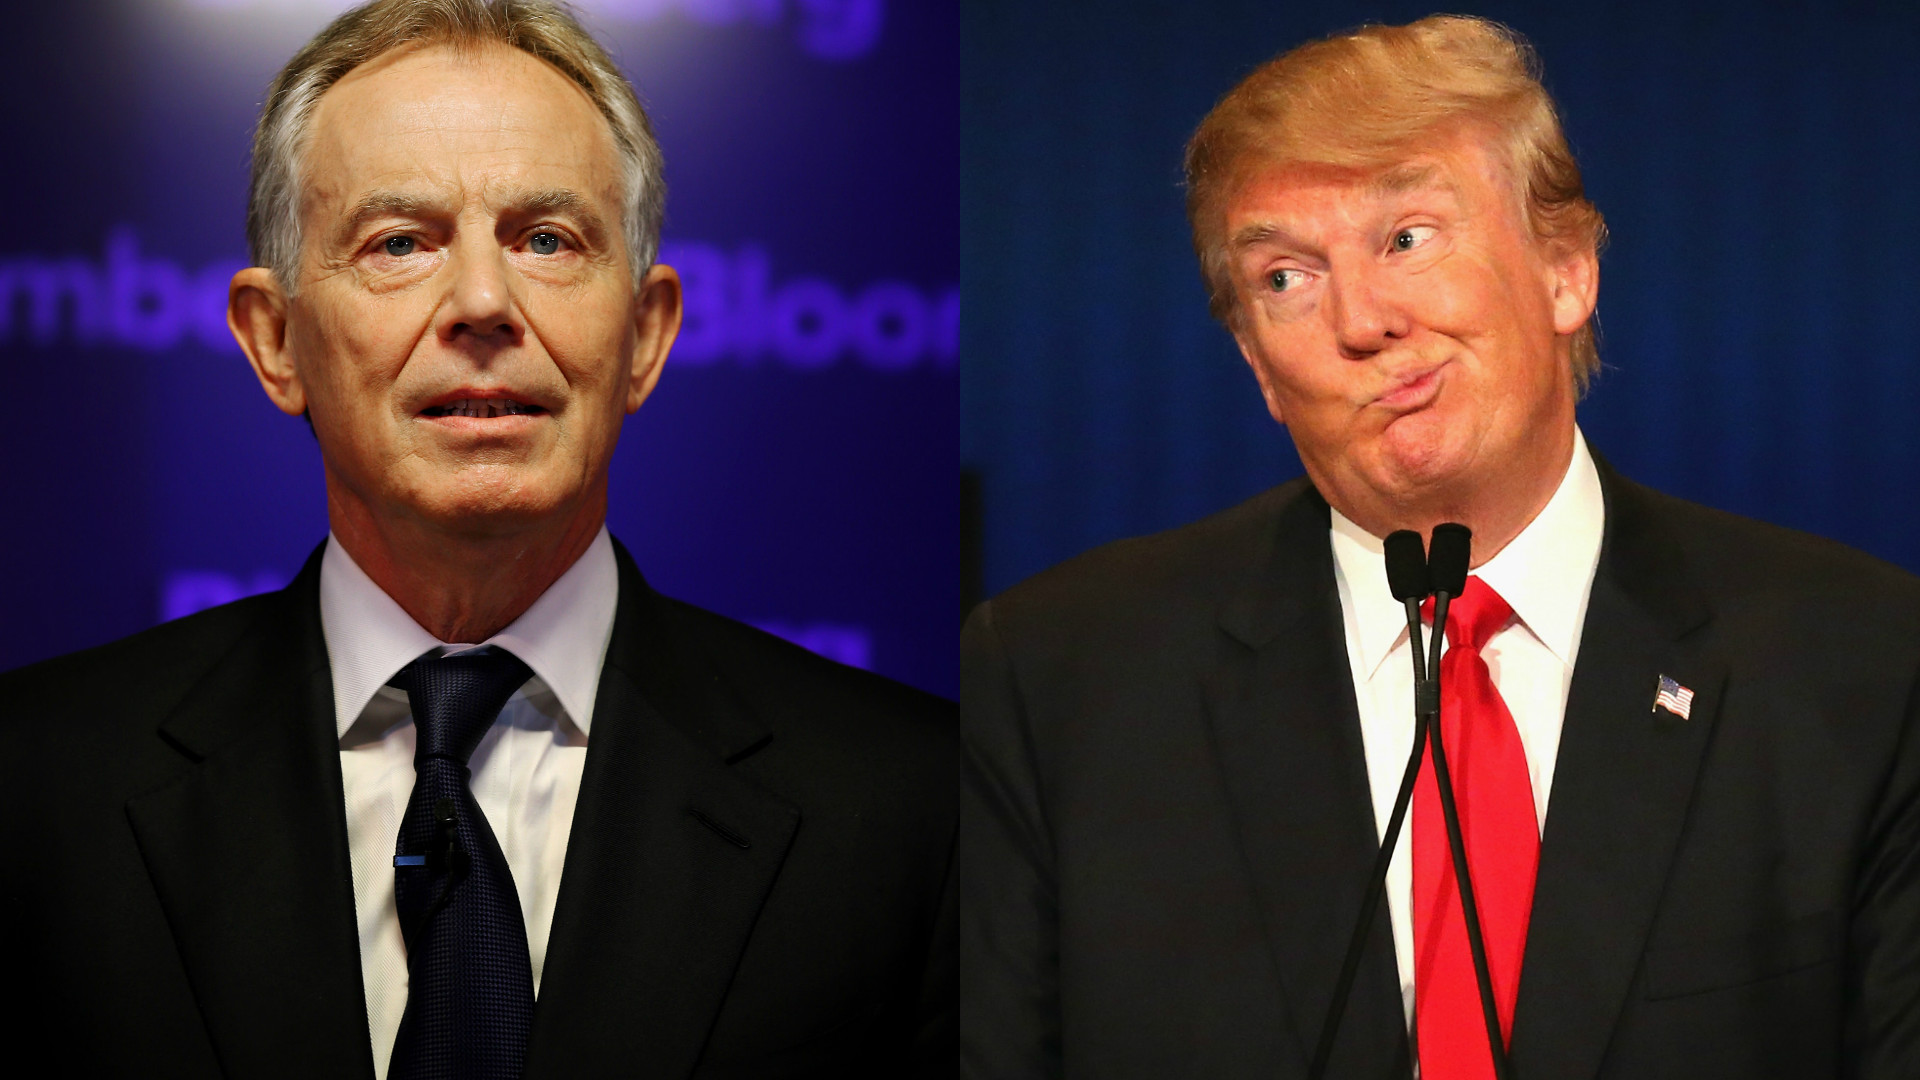 Tony Blair and Donald Trump